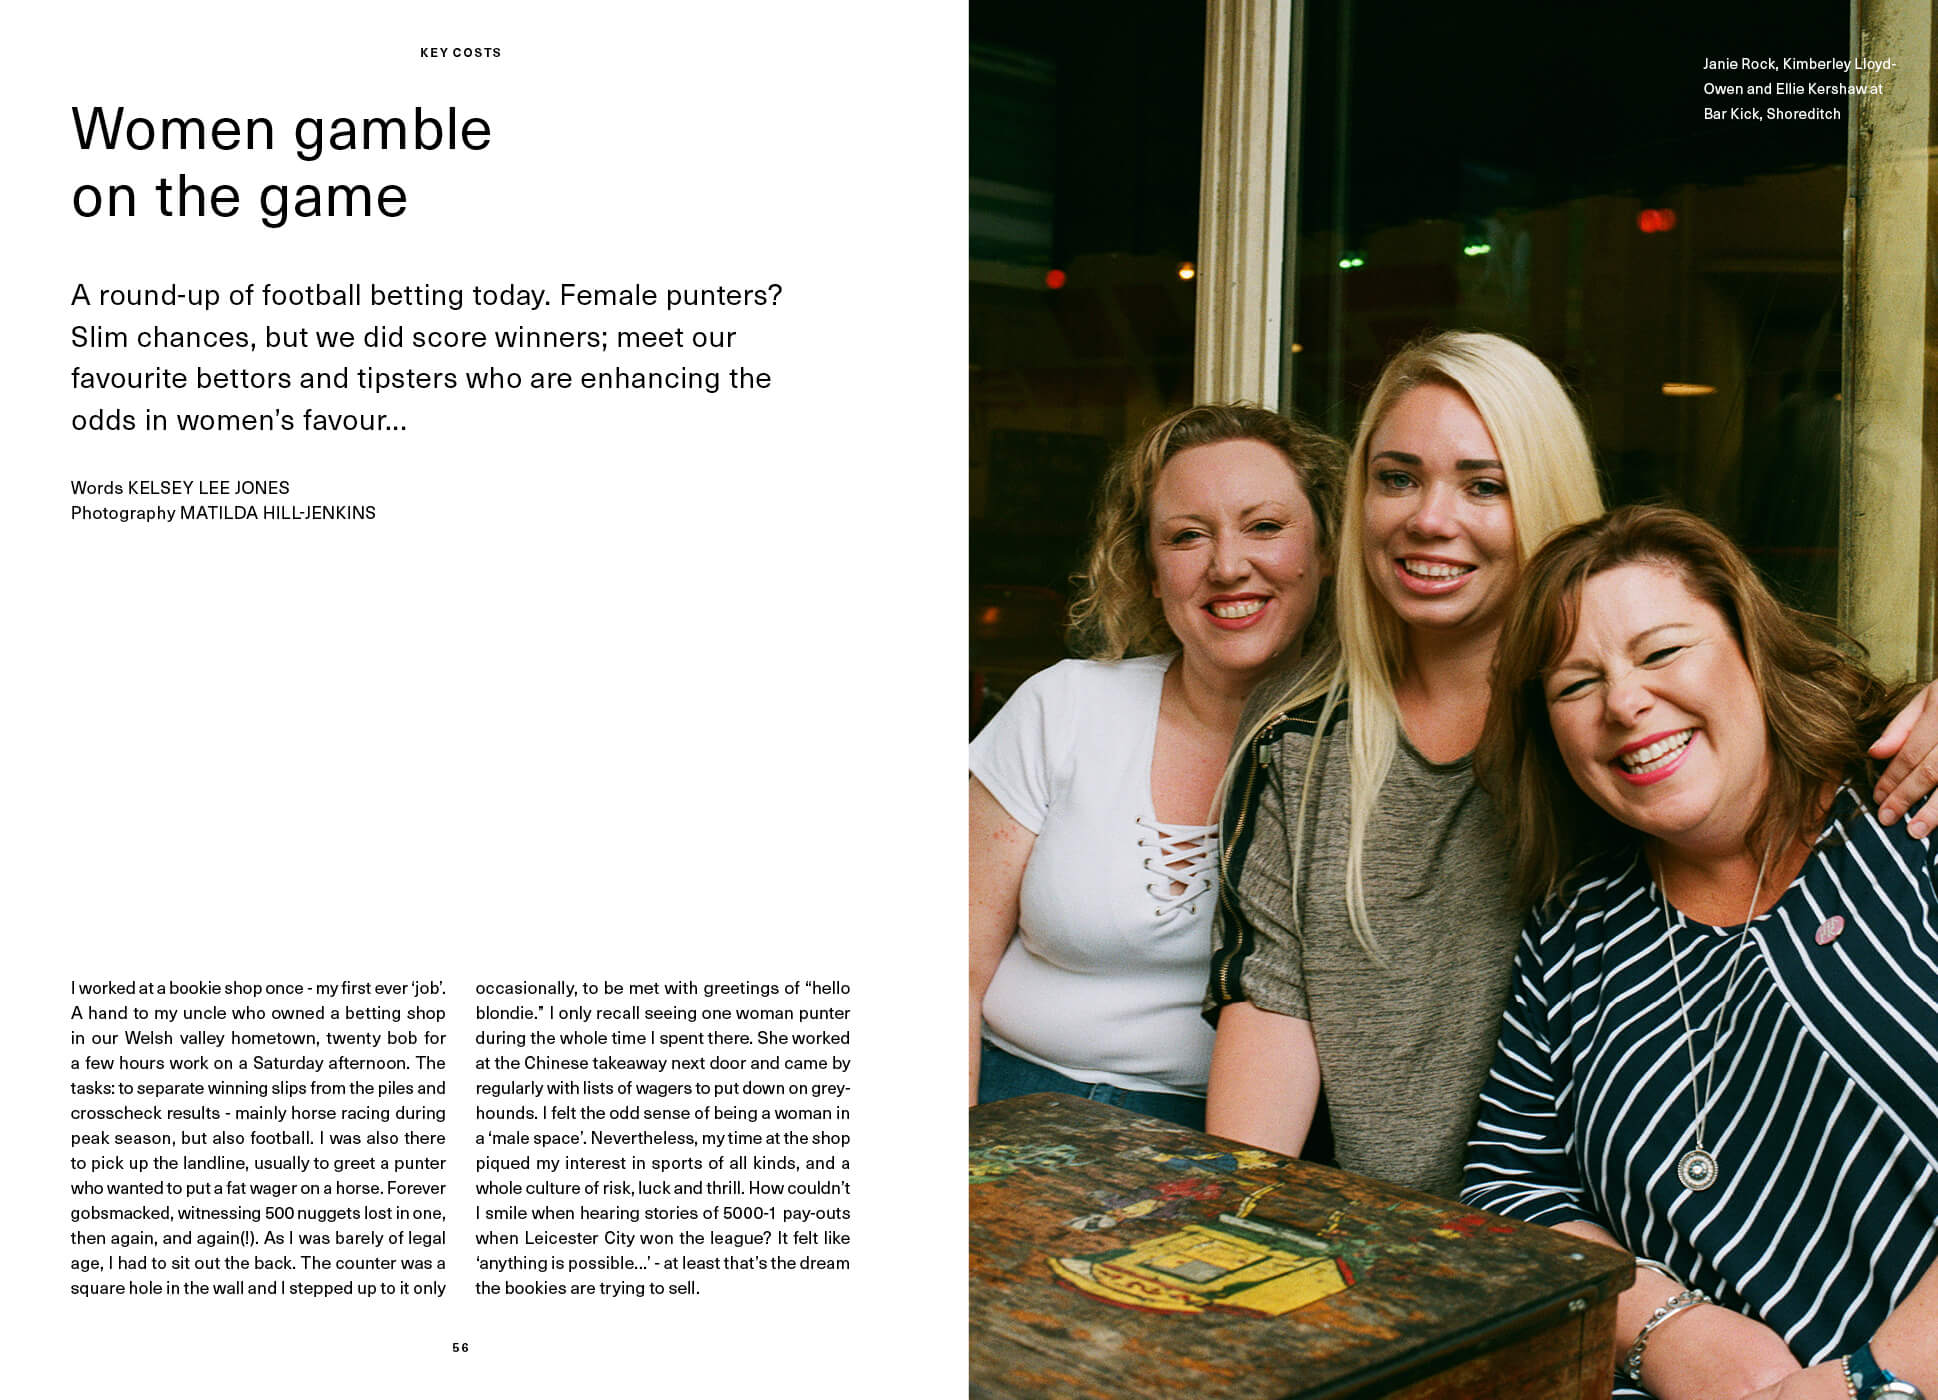 First page of Women gamble on the game SEASON interview